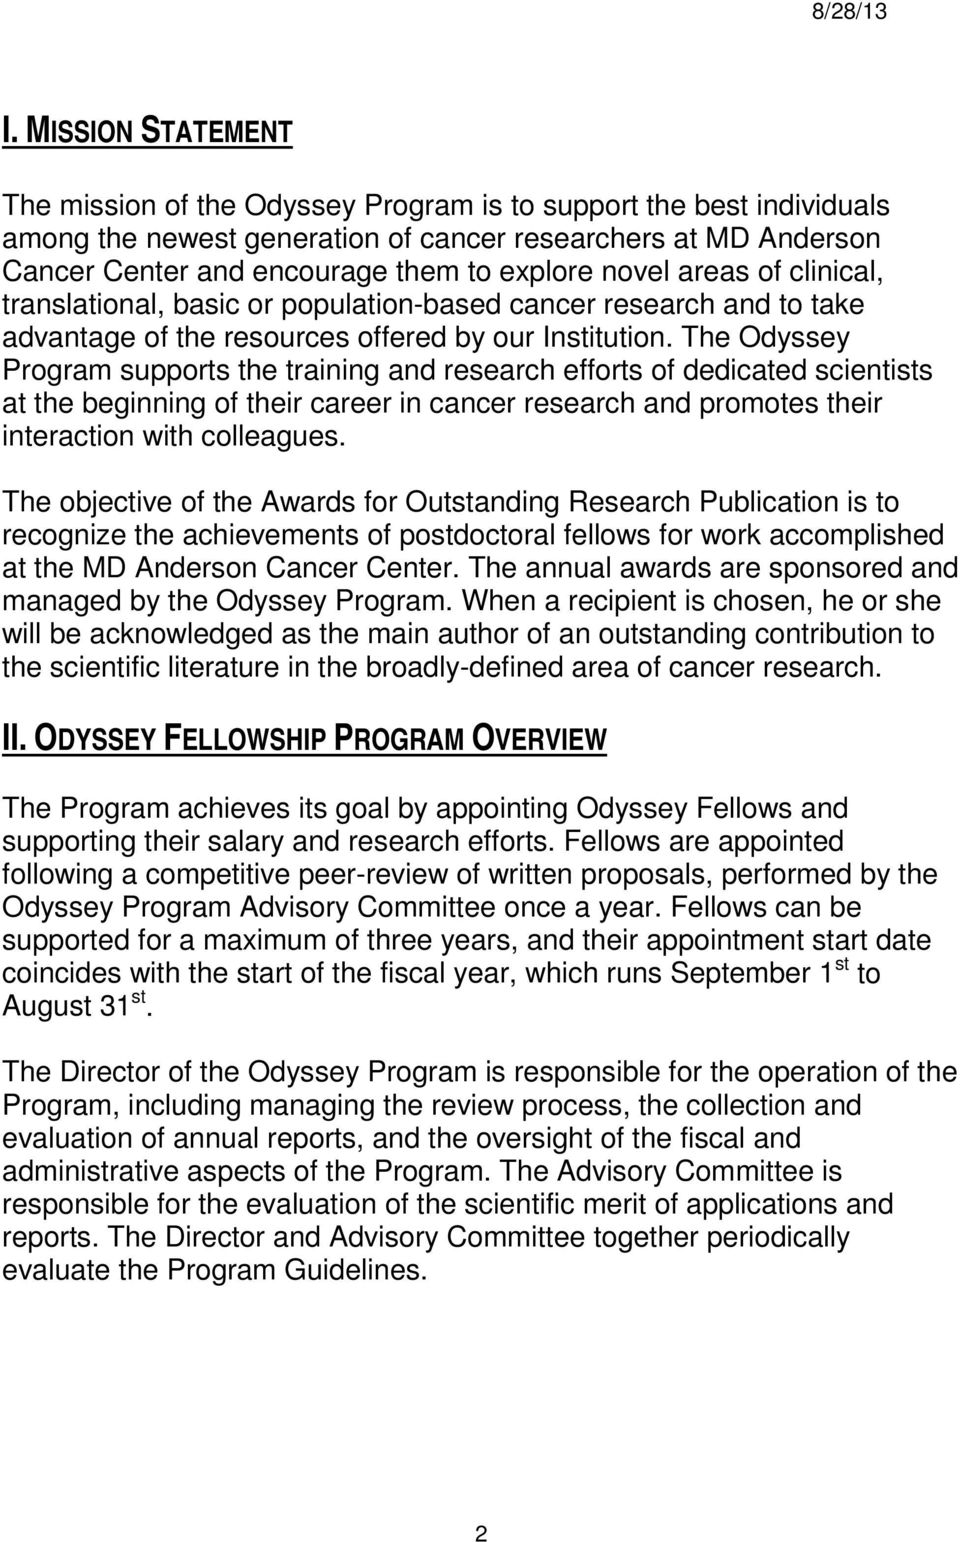 The Odyssey Program supports the training and research efforts of dedicated scientists at the beginning of their career in cancer research and promotes their interaction with colleagues.